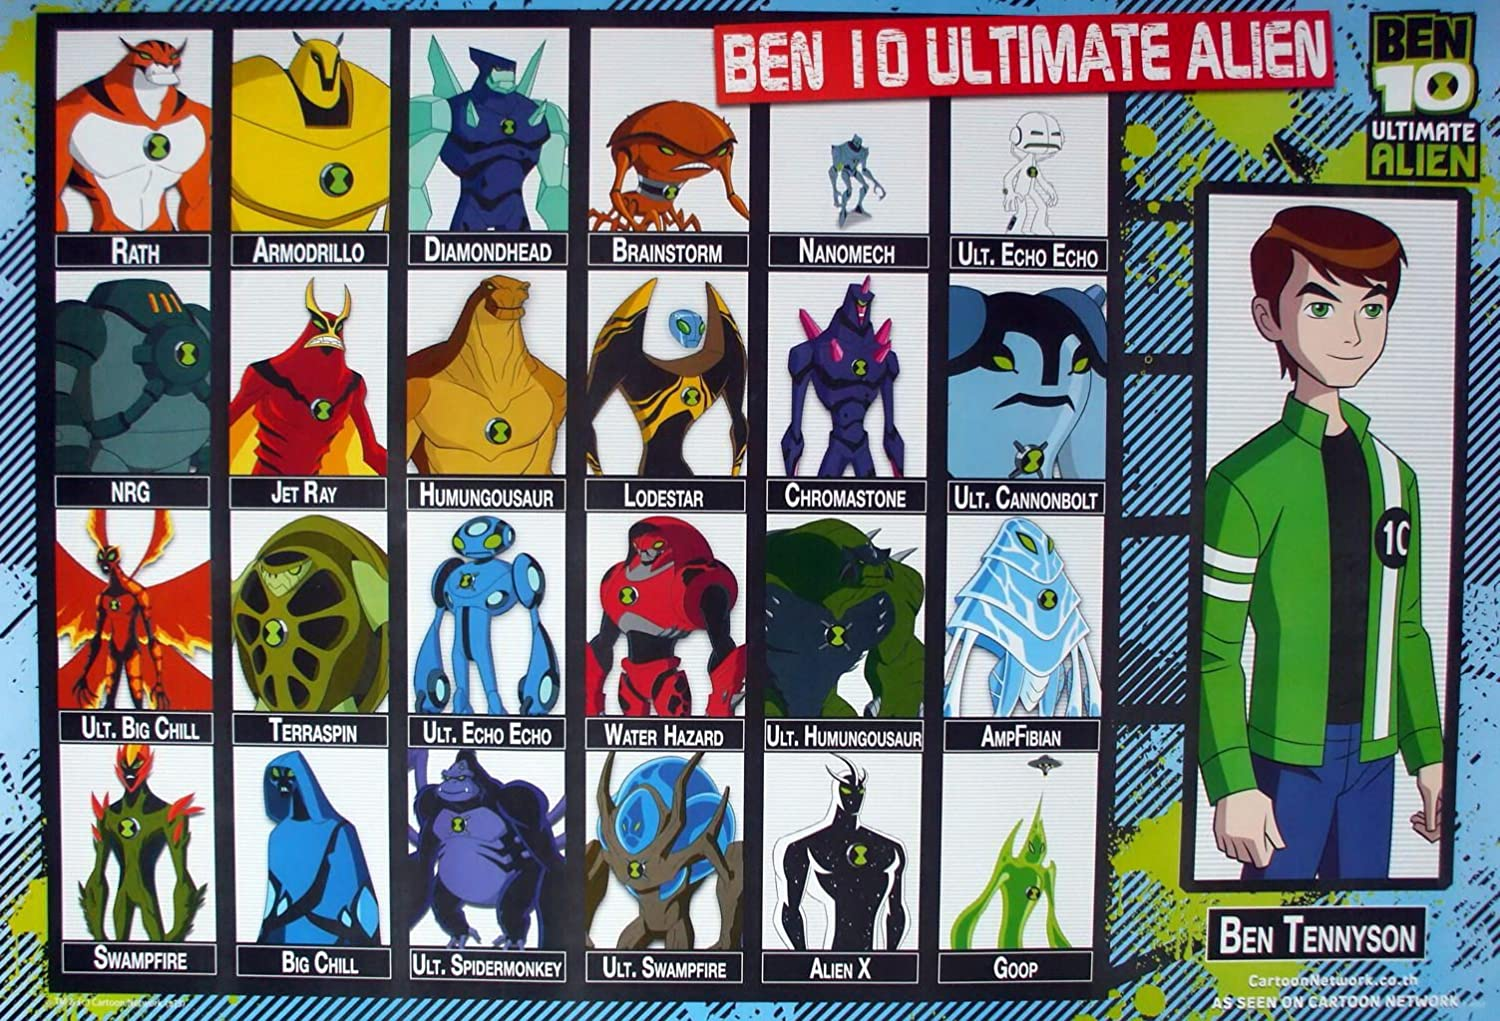 J 4661 Ben 10 Alien Force Ultimate Alien Omniverse Cartoon Network Animación Pared Decoración Póster De La Película Tamaño 35 X23 5 Home Kitchen